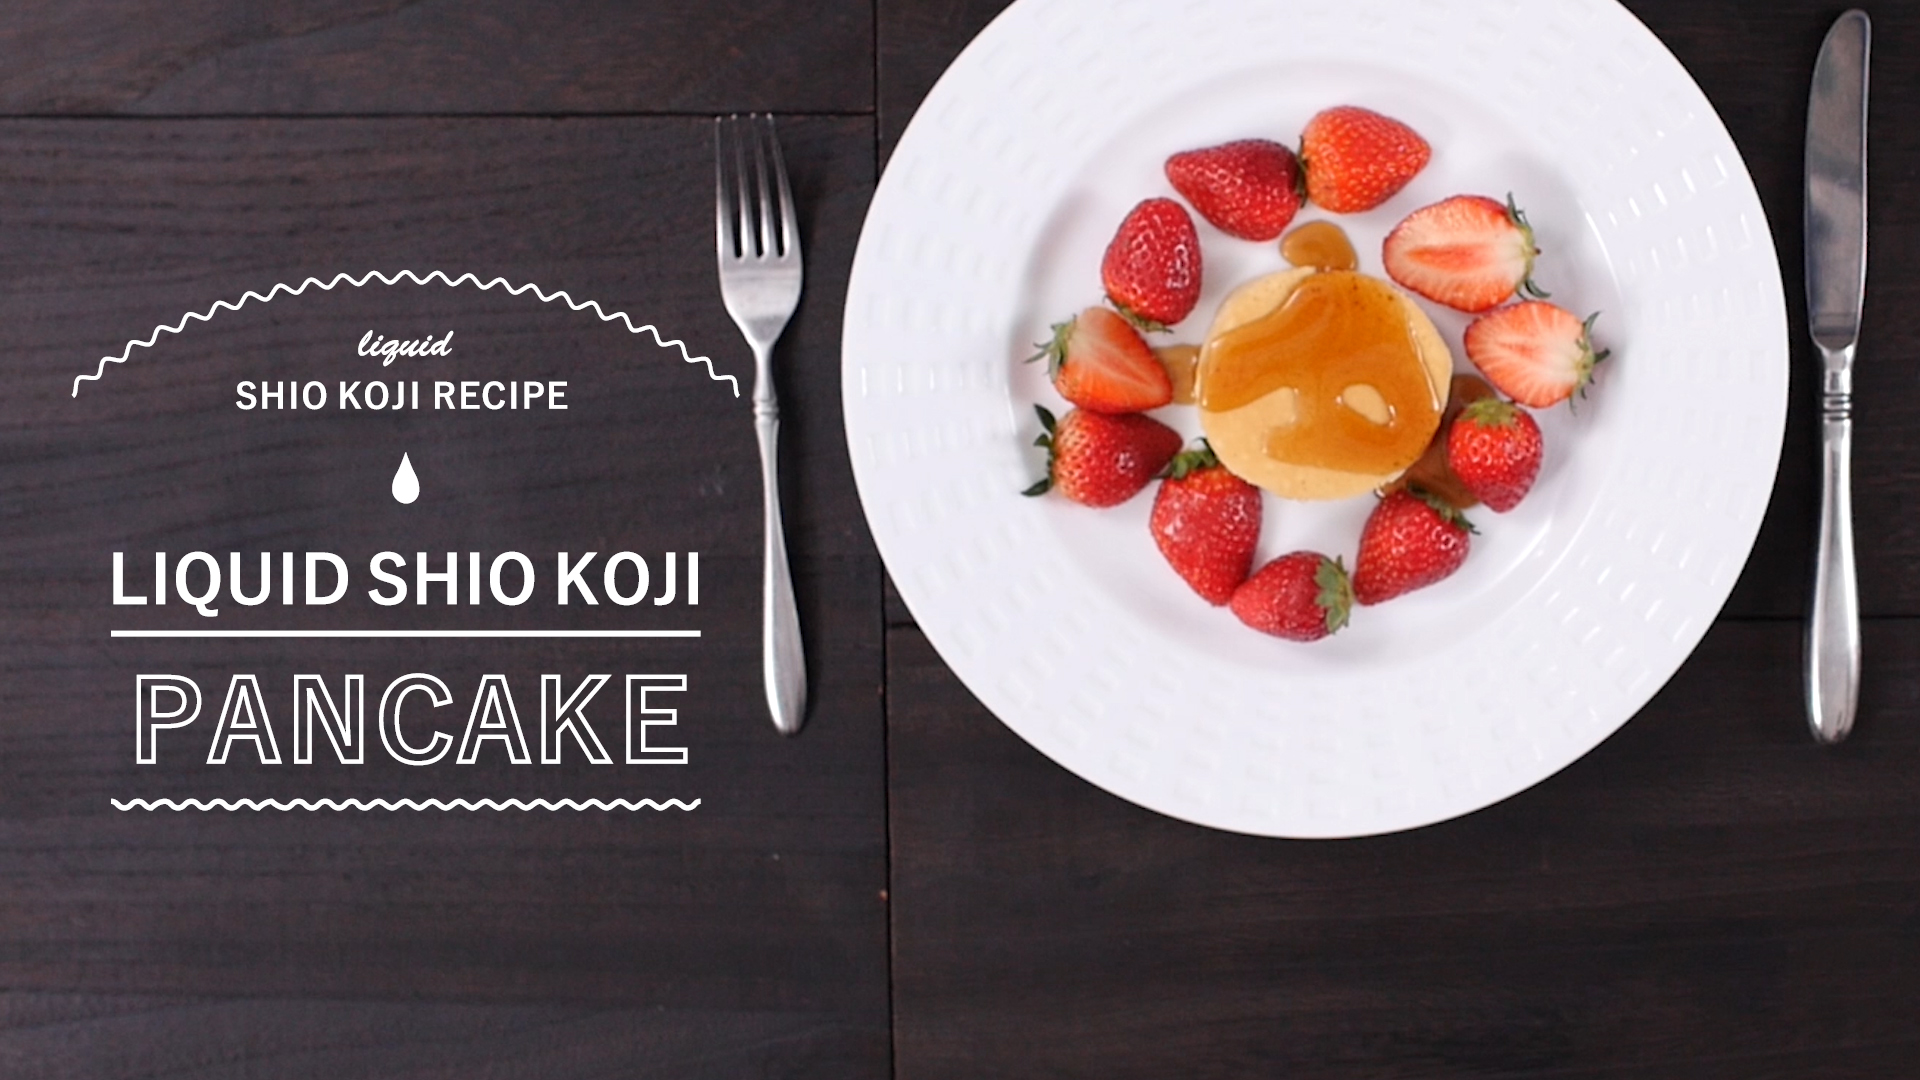 【LIQUID SHIO KOJI RECIPE PANCAKE】 Use Liquid Shio Koji = Soft and Fluffy!